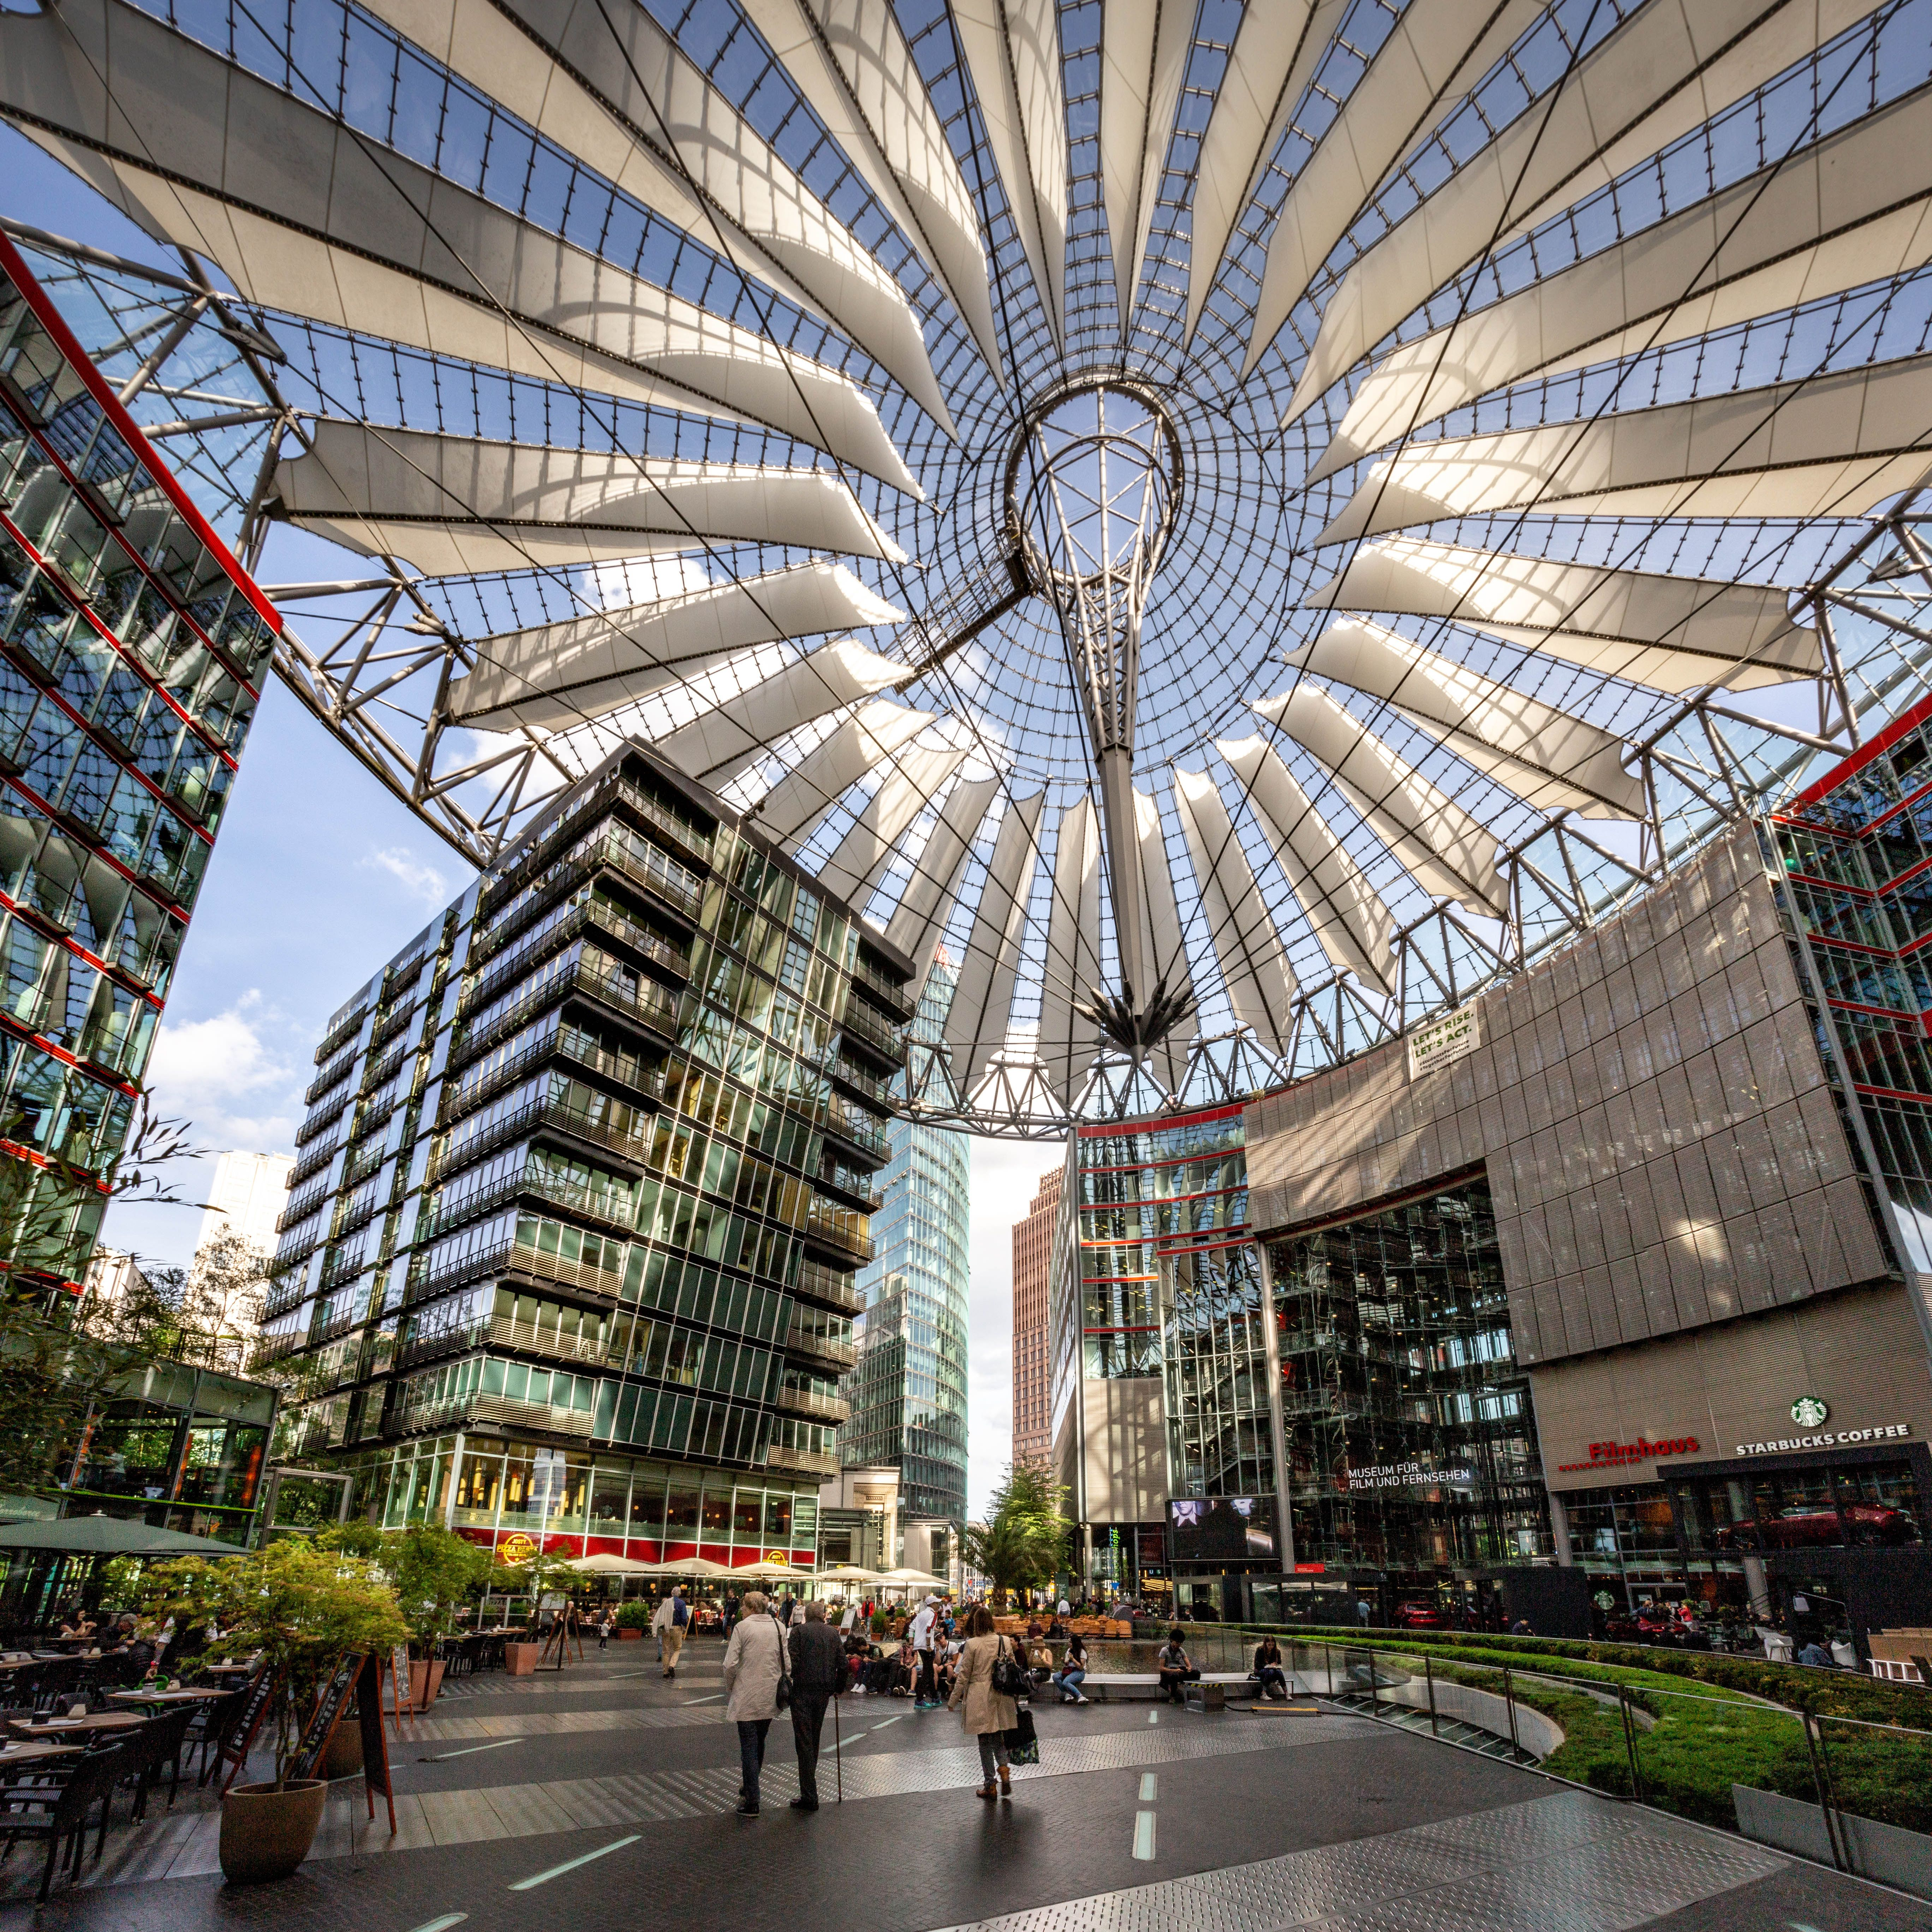 A shot of Potsdamer Platz with a large outdoor sculpture above the people who are walking by